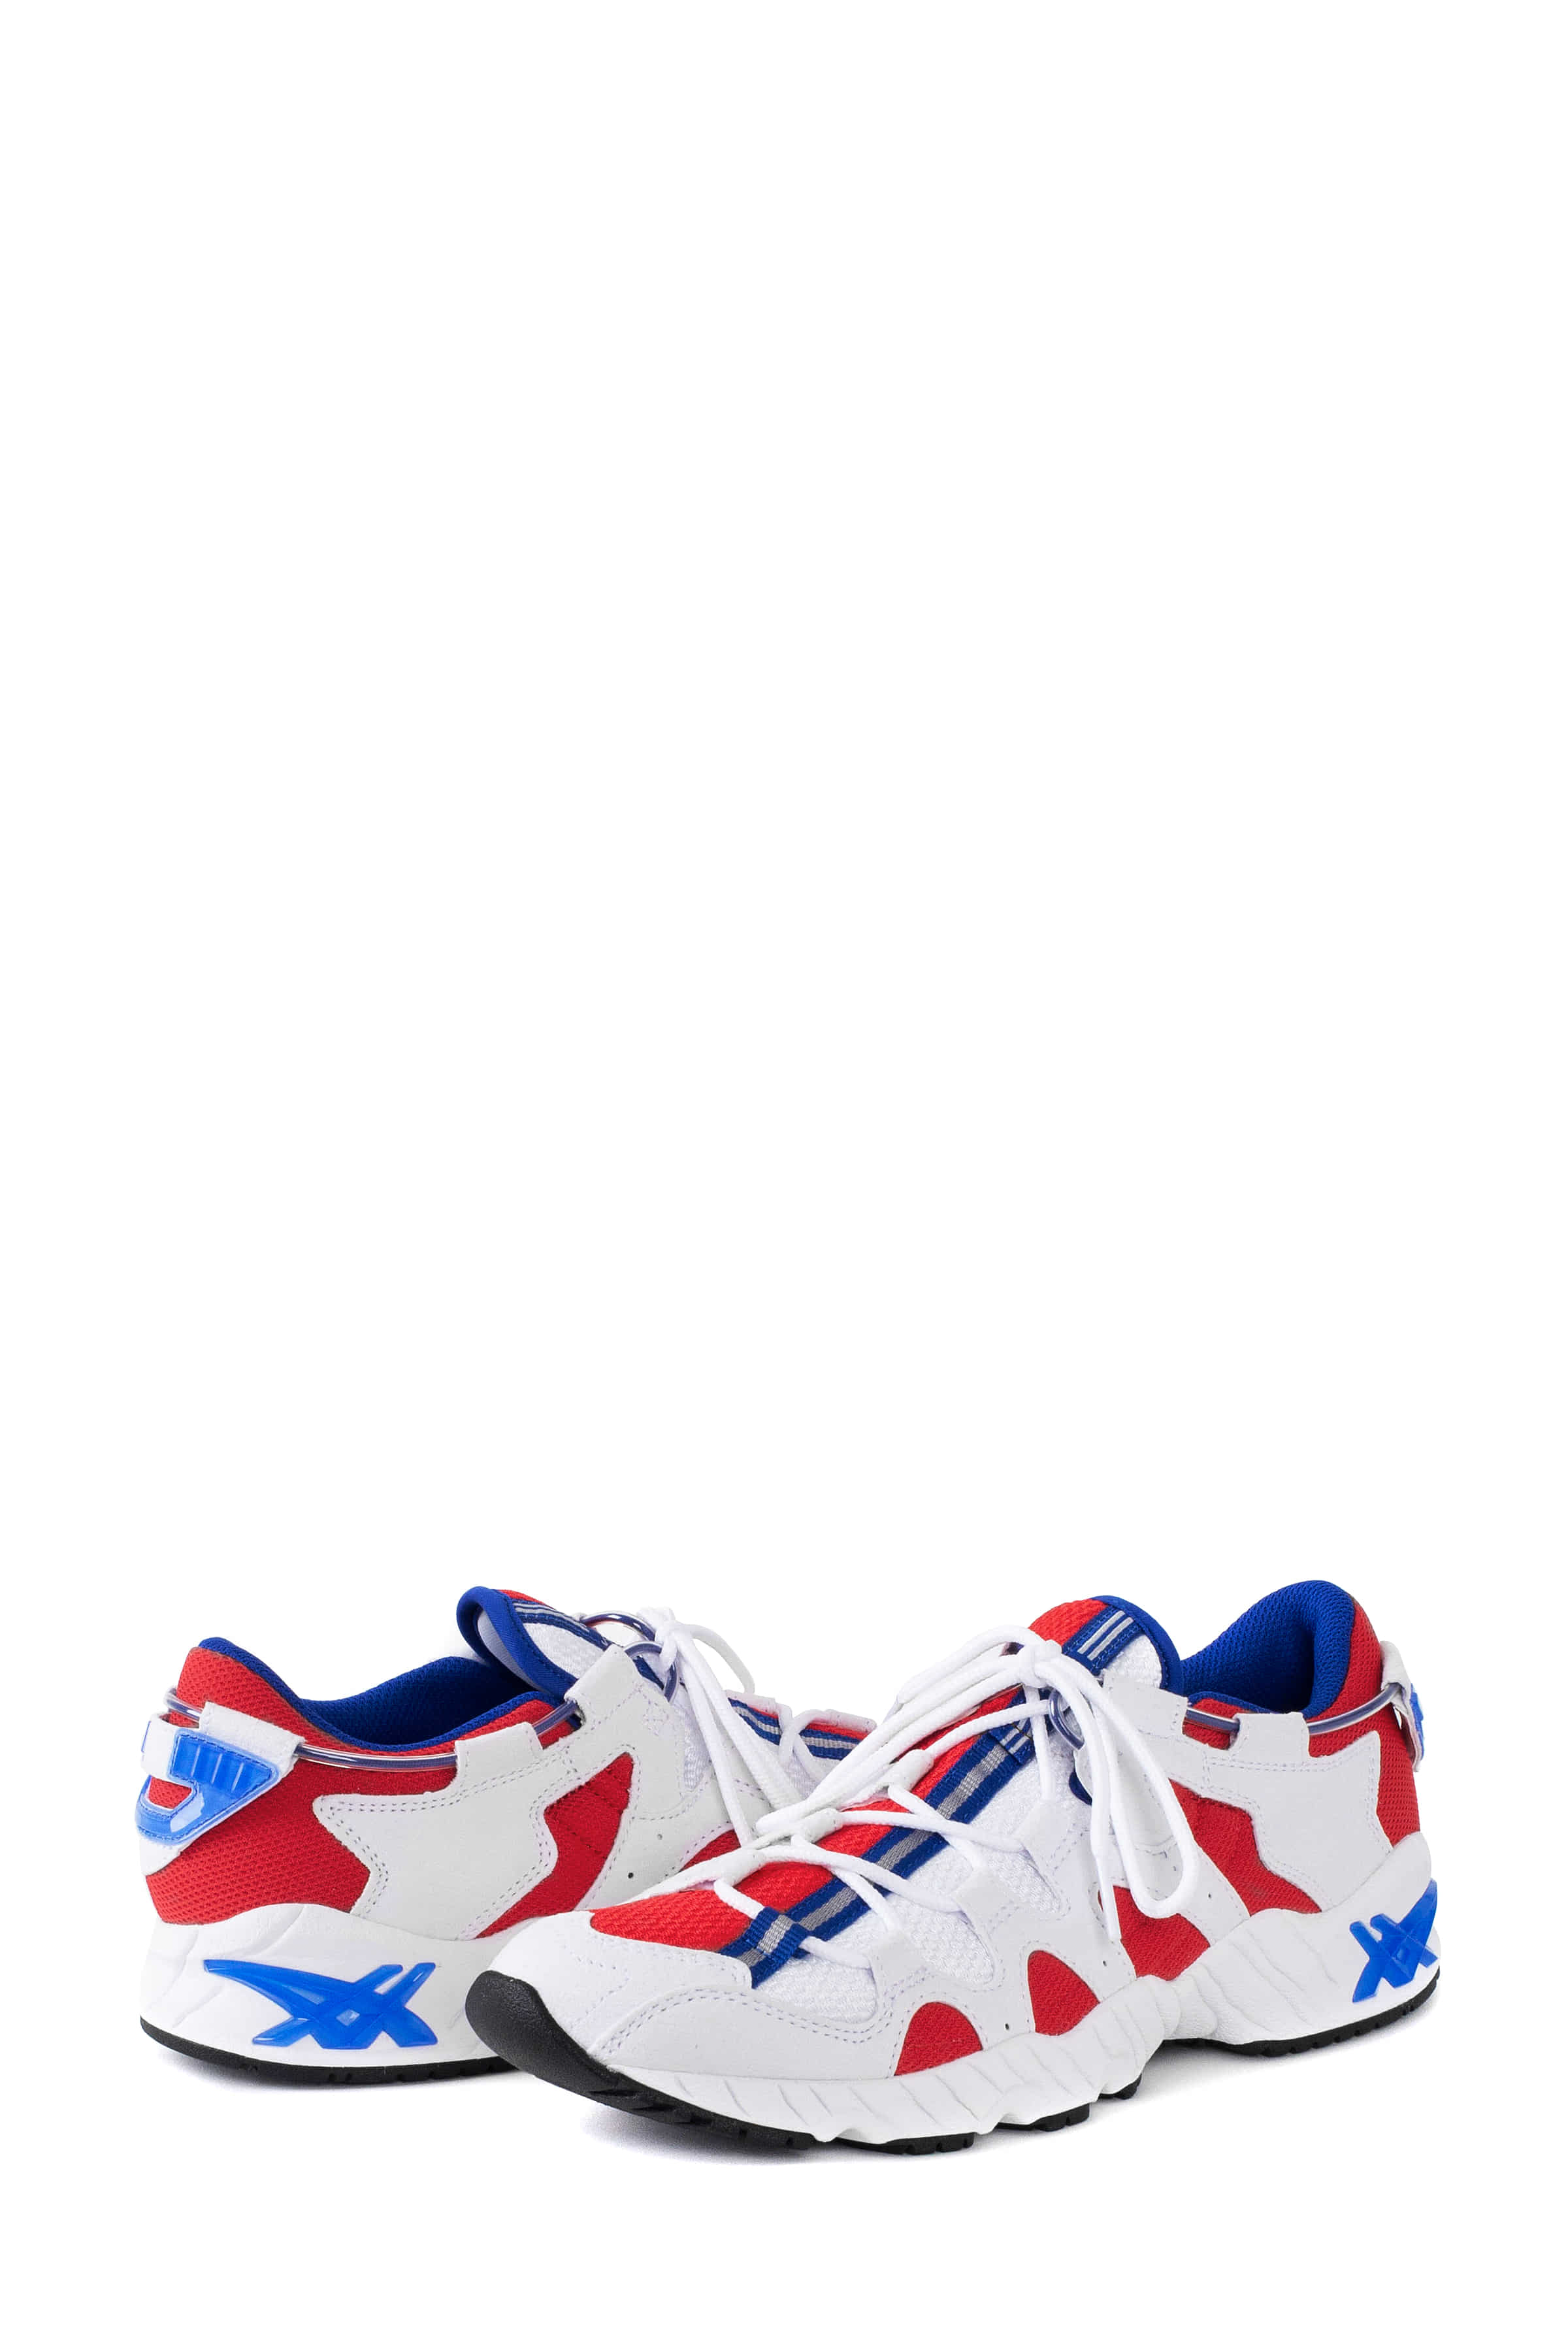 asics tiger : Gel-Mai (Red / White)